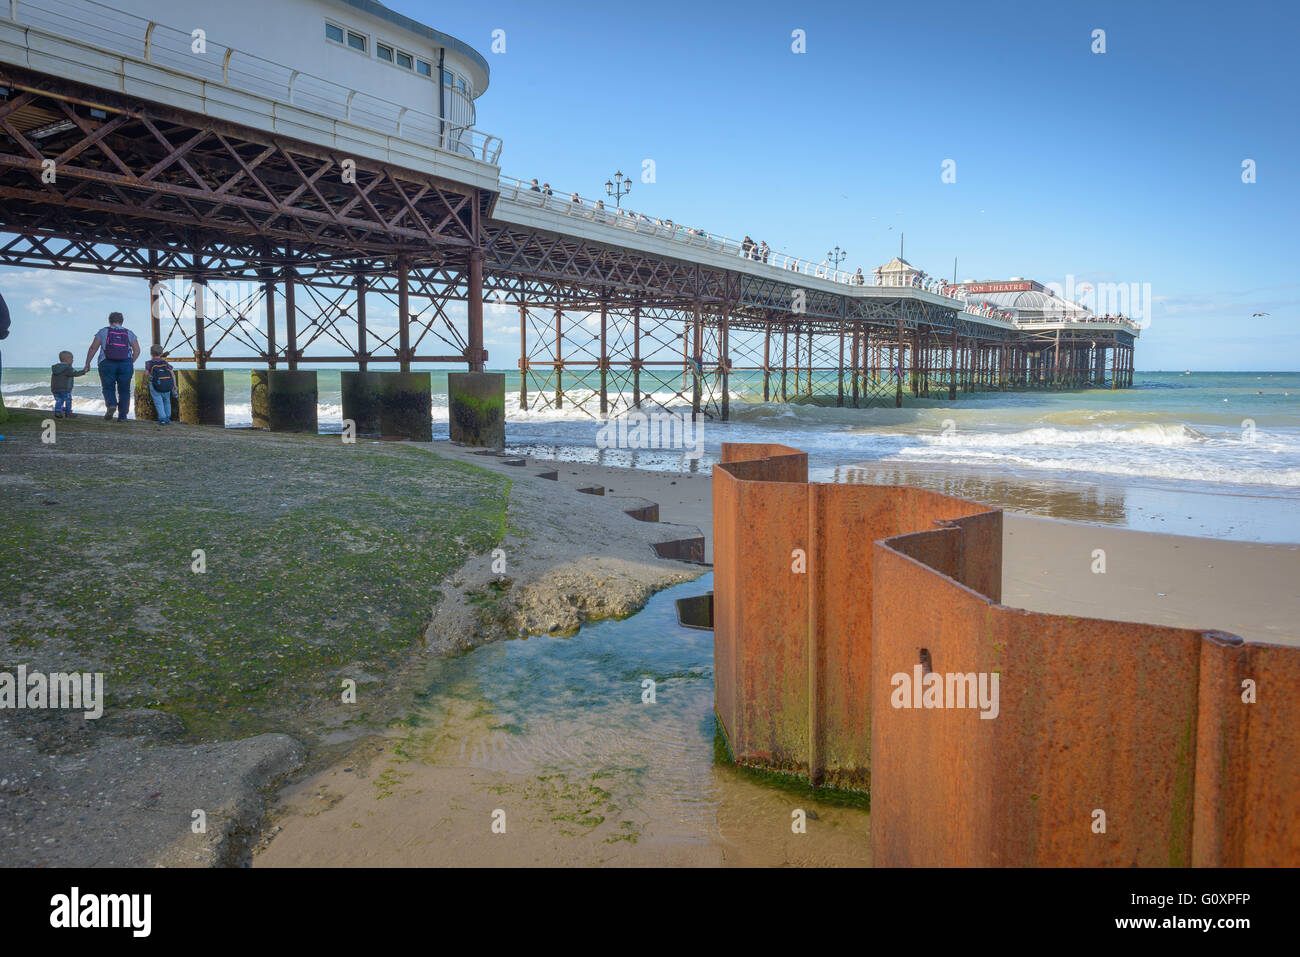 Cromer Pier and beach on the Norfolk Coast, England - Stock Image